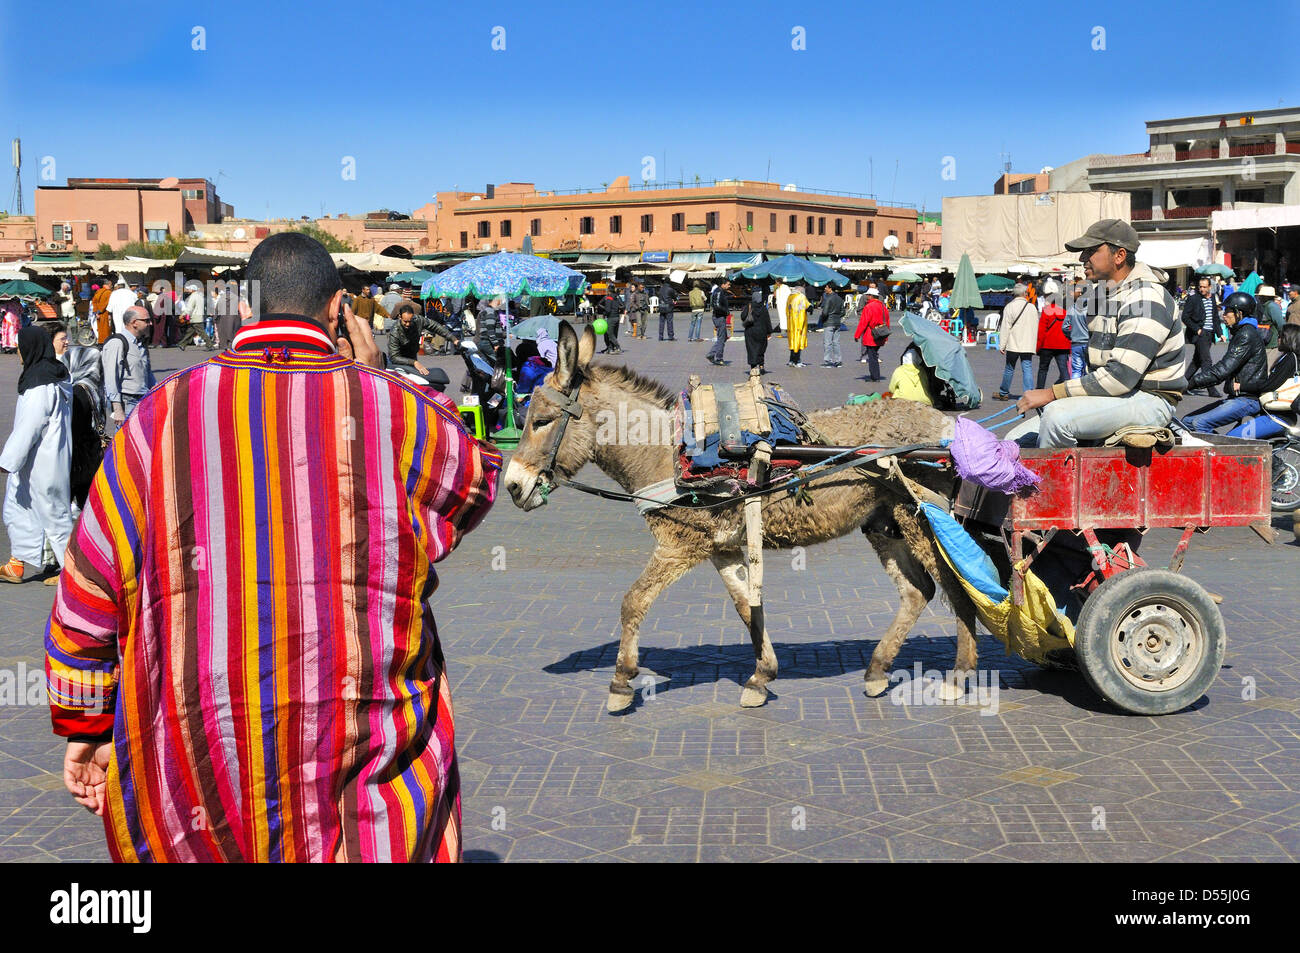 Typical of the daily hubbub of traders and tourists crowds in Jemaa el- Fnaa ( Square) . Marrakesh, Morocco Stock Photo